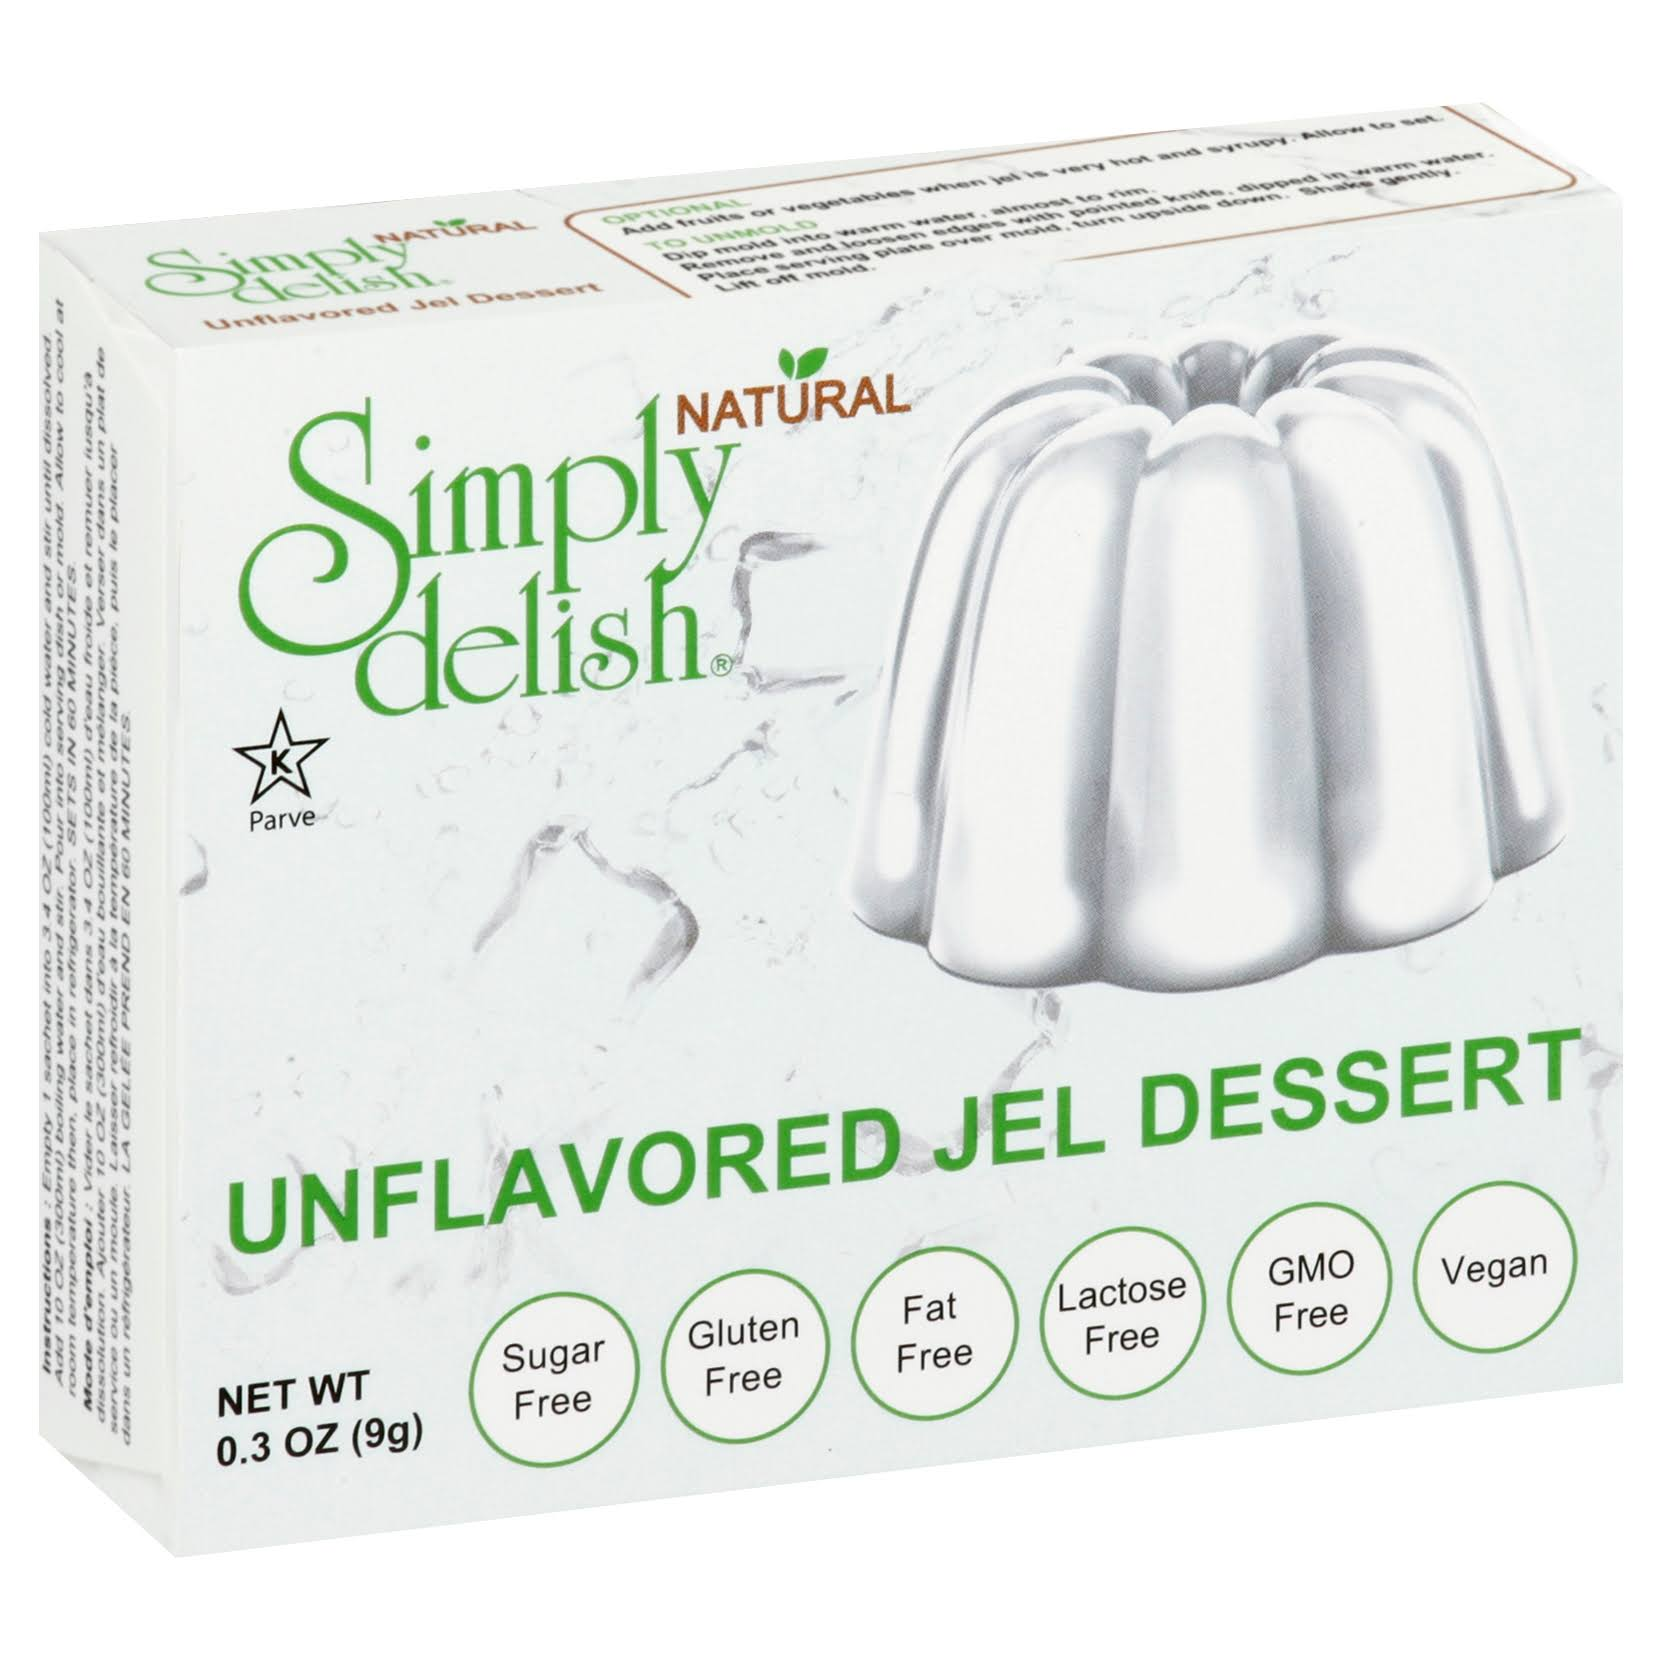 Simply Delish Unflavored Jel Dessert - 0.3oz